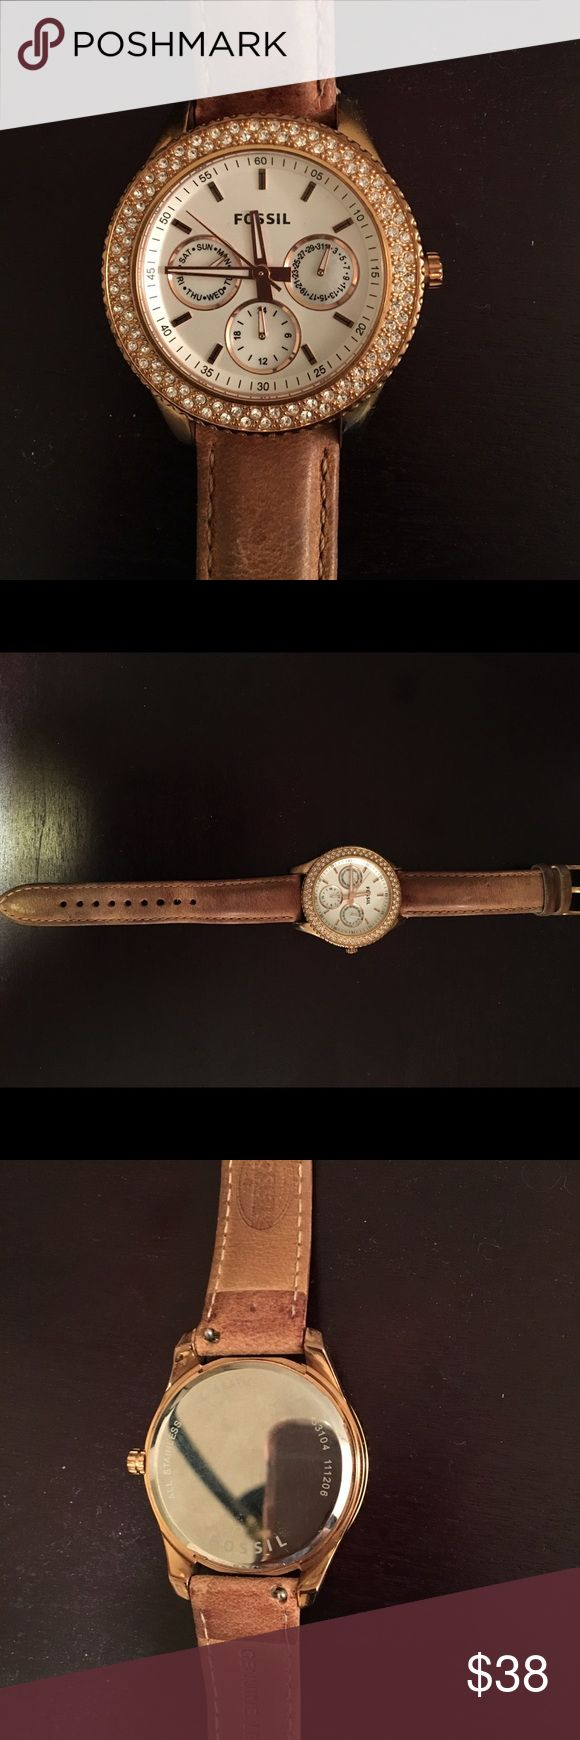 Fossil Leather Watch Fossil genuine tan leather with stainless steel face. Rose gold details and crystals surrounding the face. NEEDS NEW BATTERY Fossil Accessories Watches